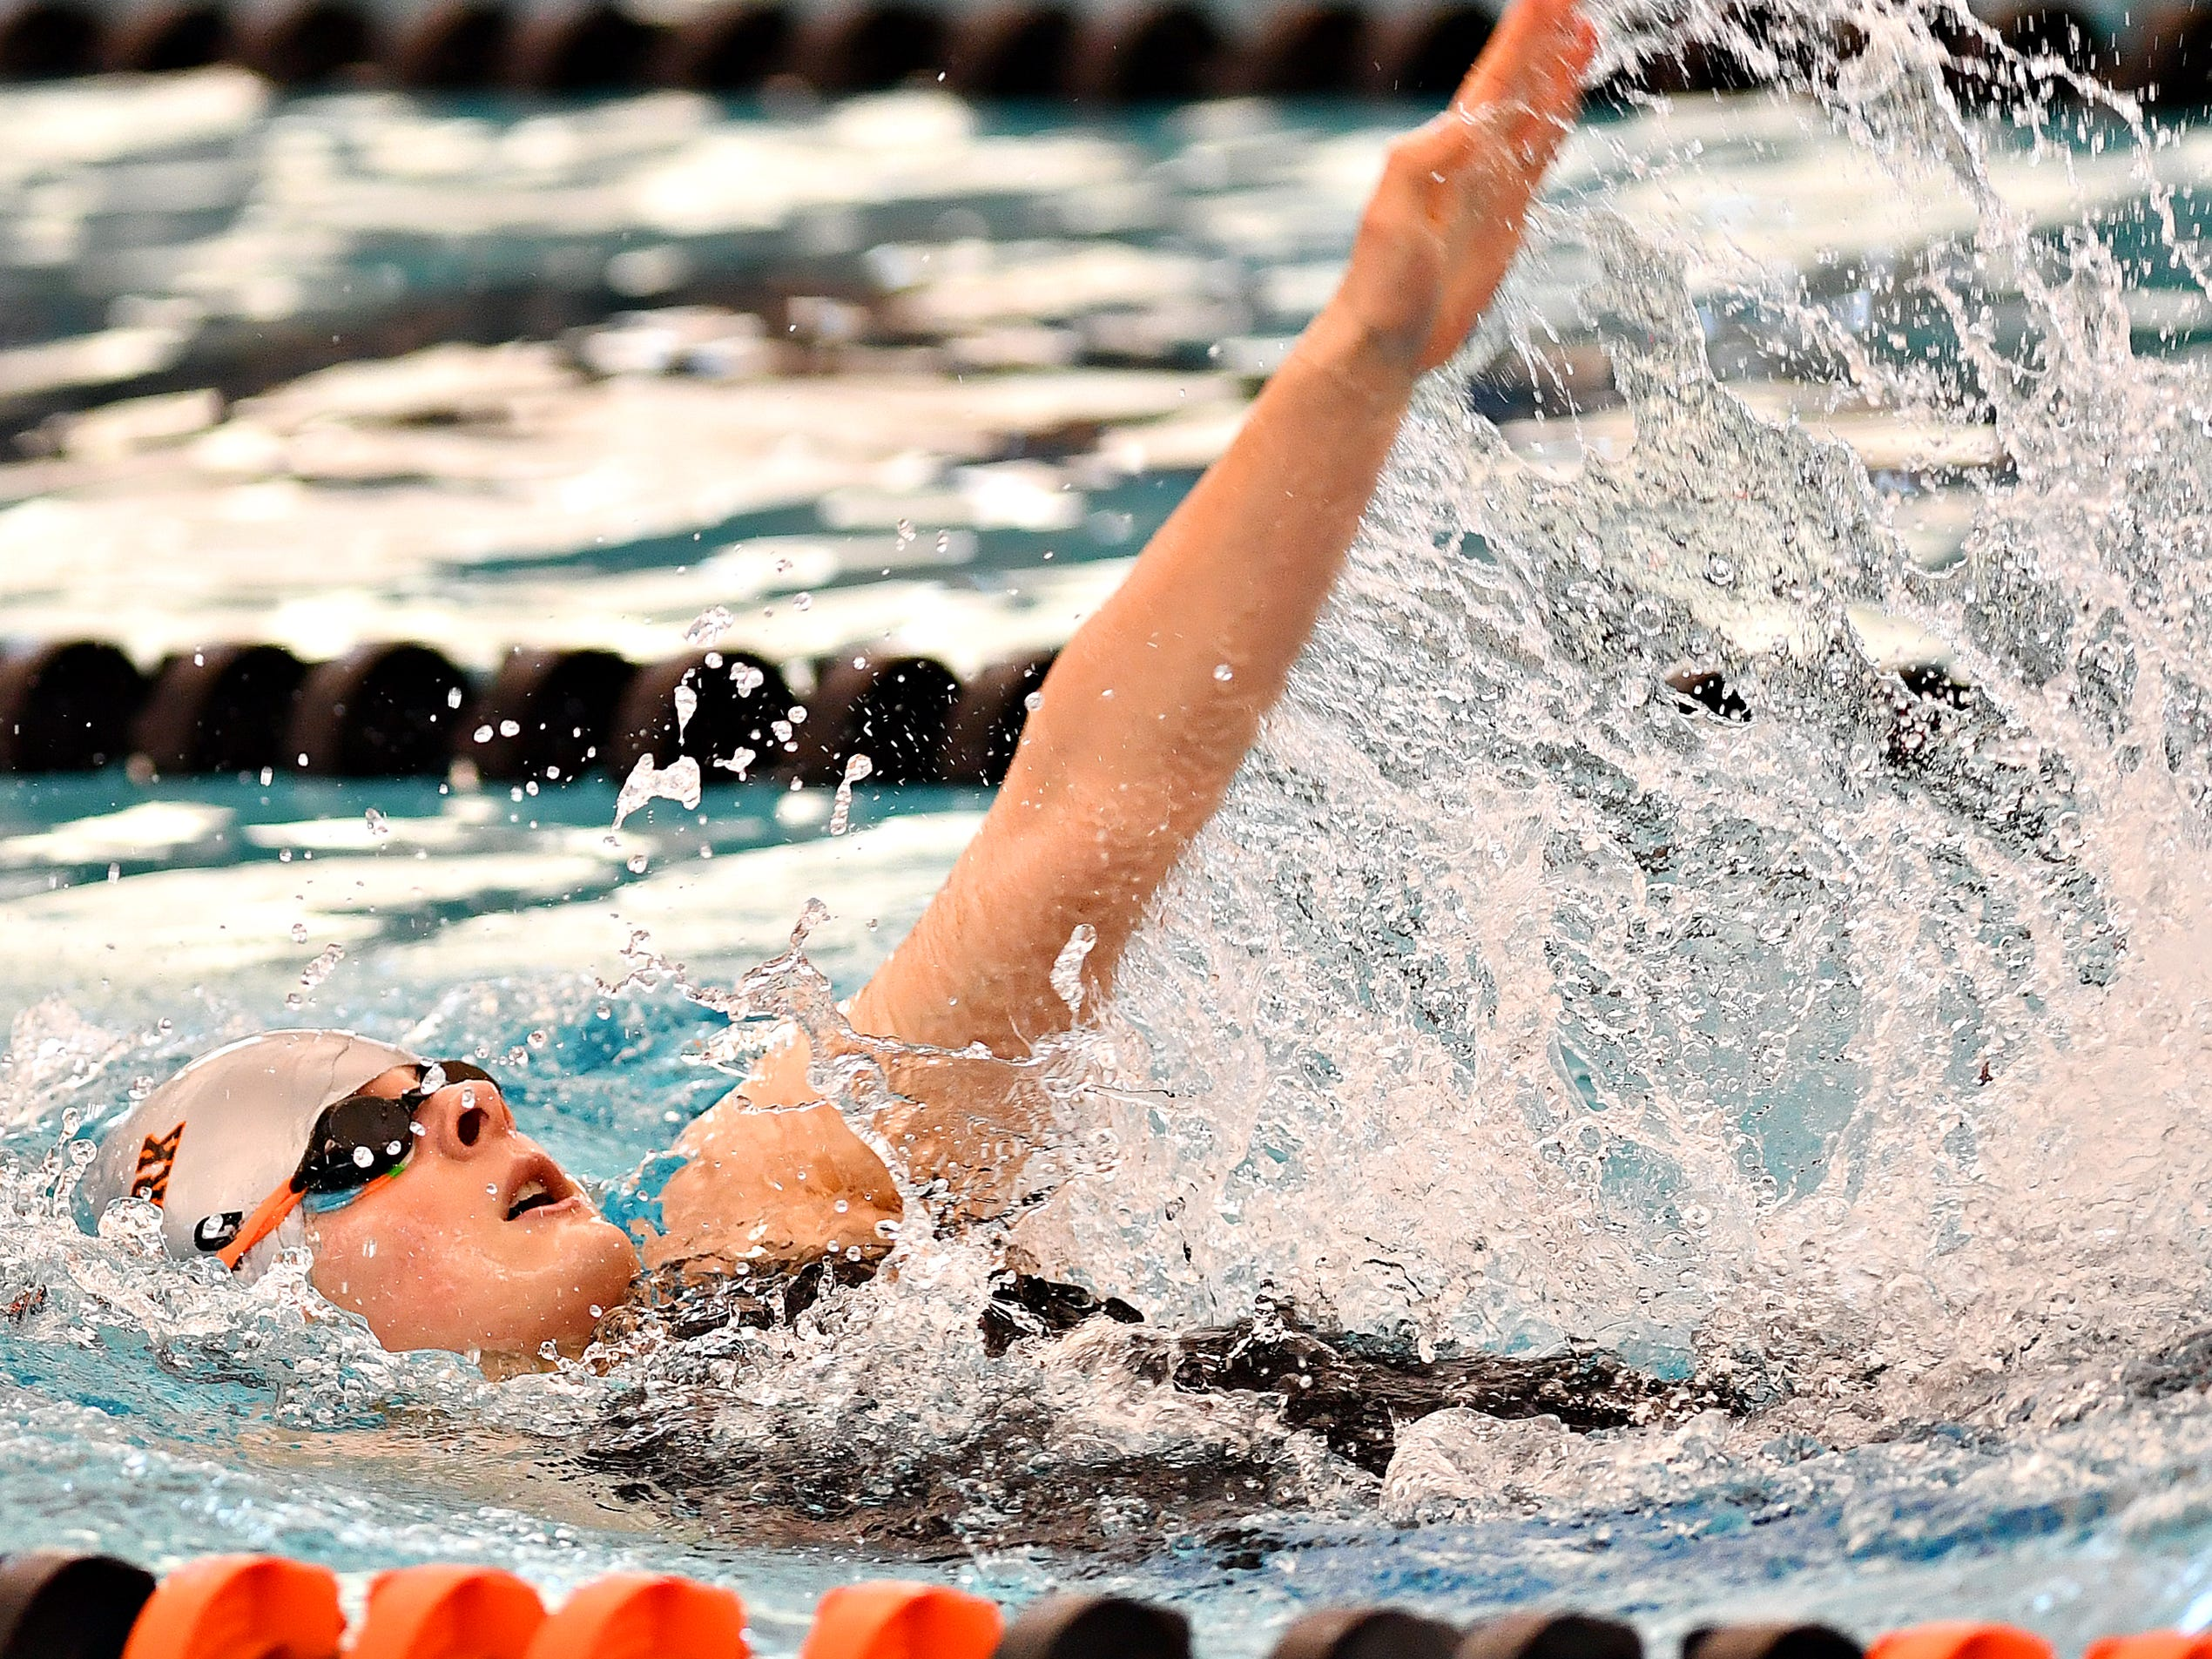 Central York's Camryn Leydig competes in the 100 Yard Backstroke event during the York-Adams League Swimming Championship at Central York High School in Springettsbury Township, Saturday, Feb. 9, 2019. Leydig would win the event at 56.67. Dawn J. Sagert photo